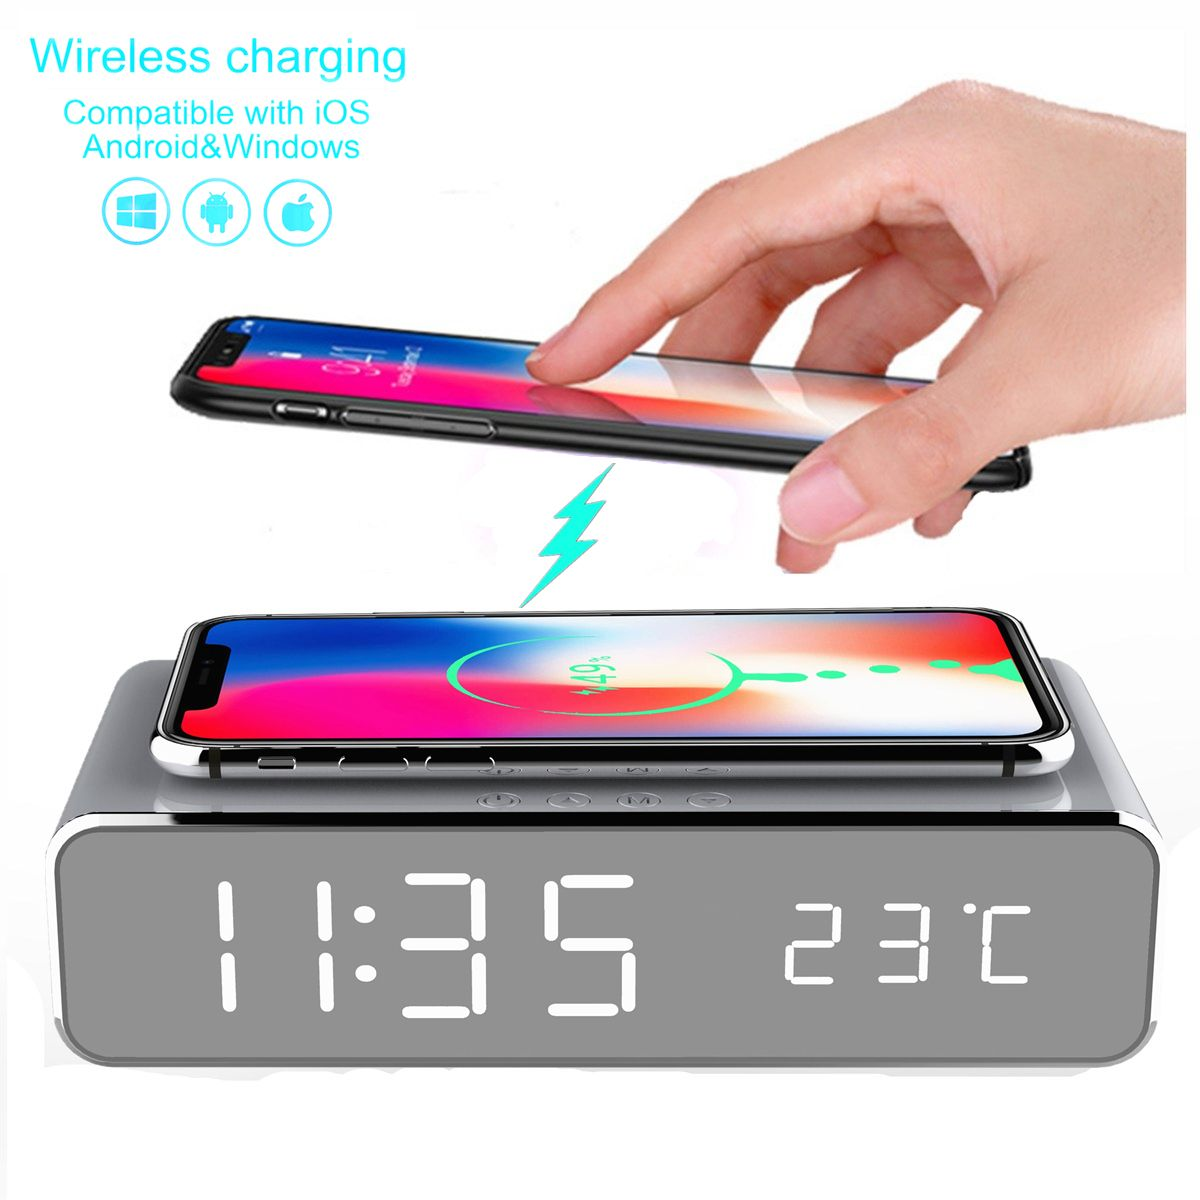 Electric Led Alarm Clock With Phone Wireless Charger Desktop Digital Thermometer Clock Hd Mirror Clock With Tim Digital Alarm Clock Alarm Clock Led Alarm Clock